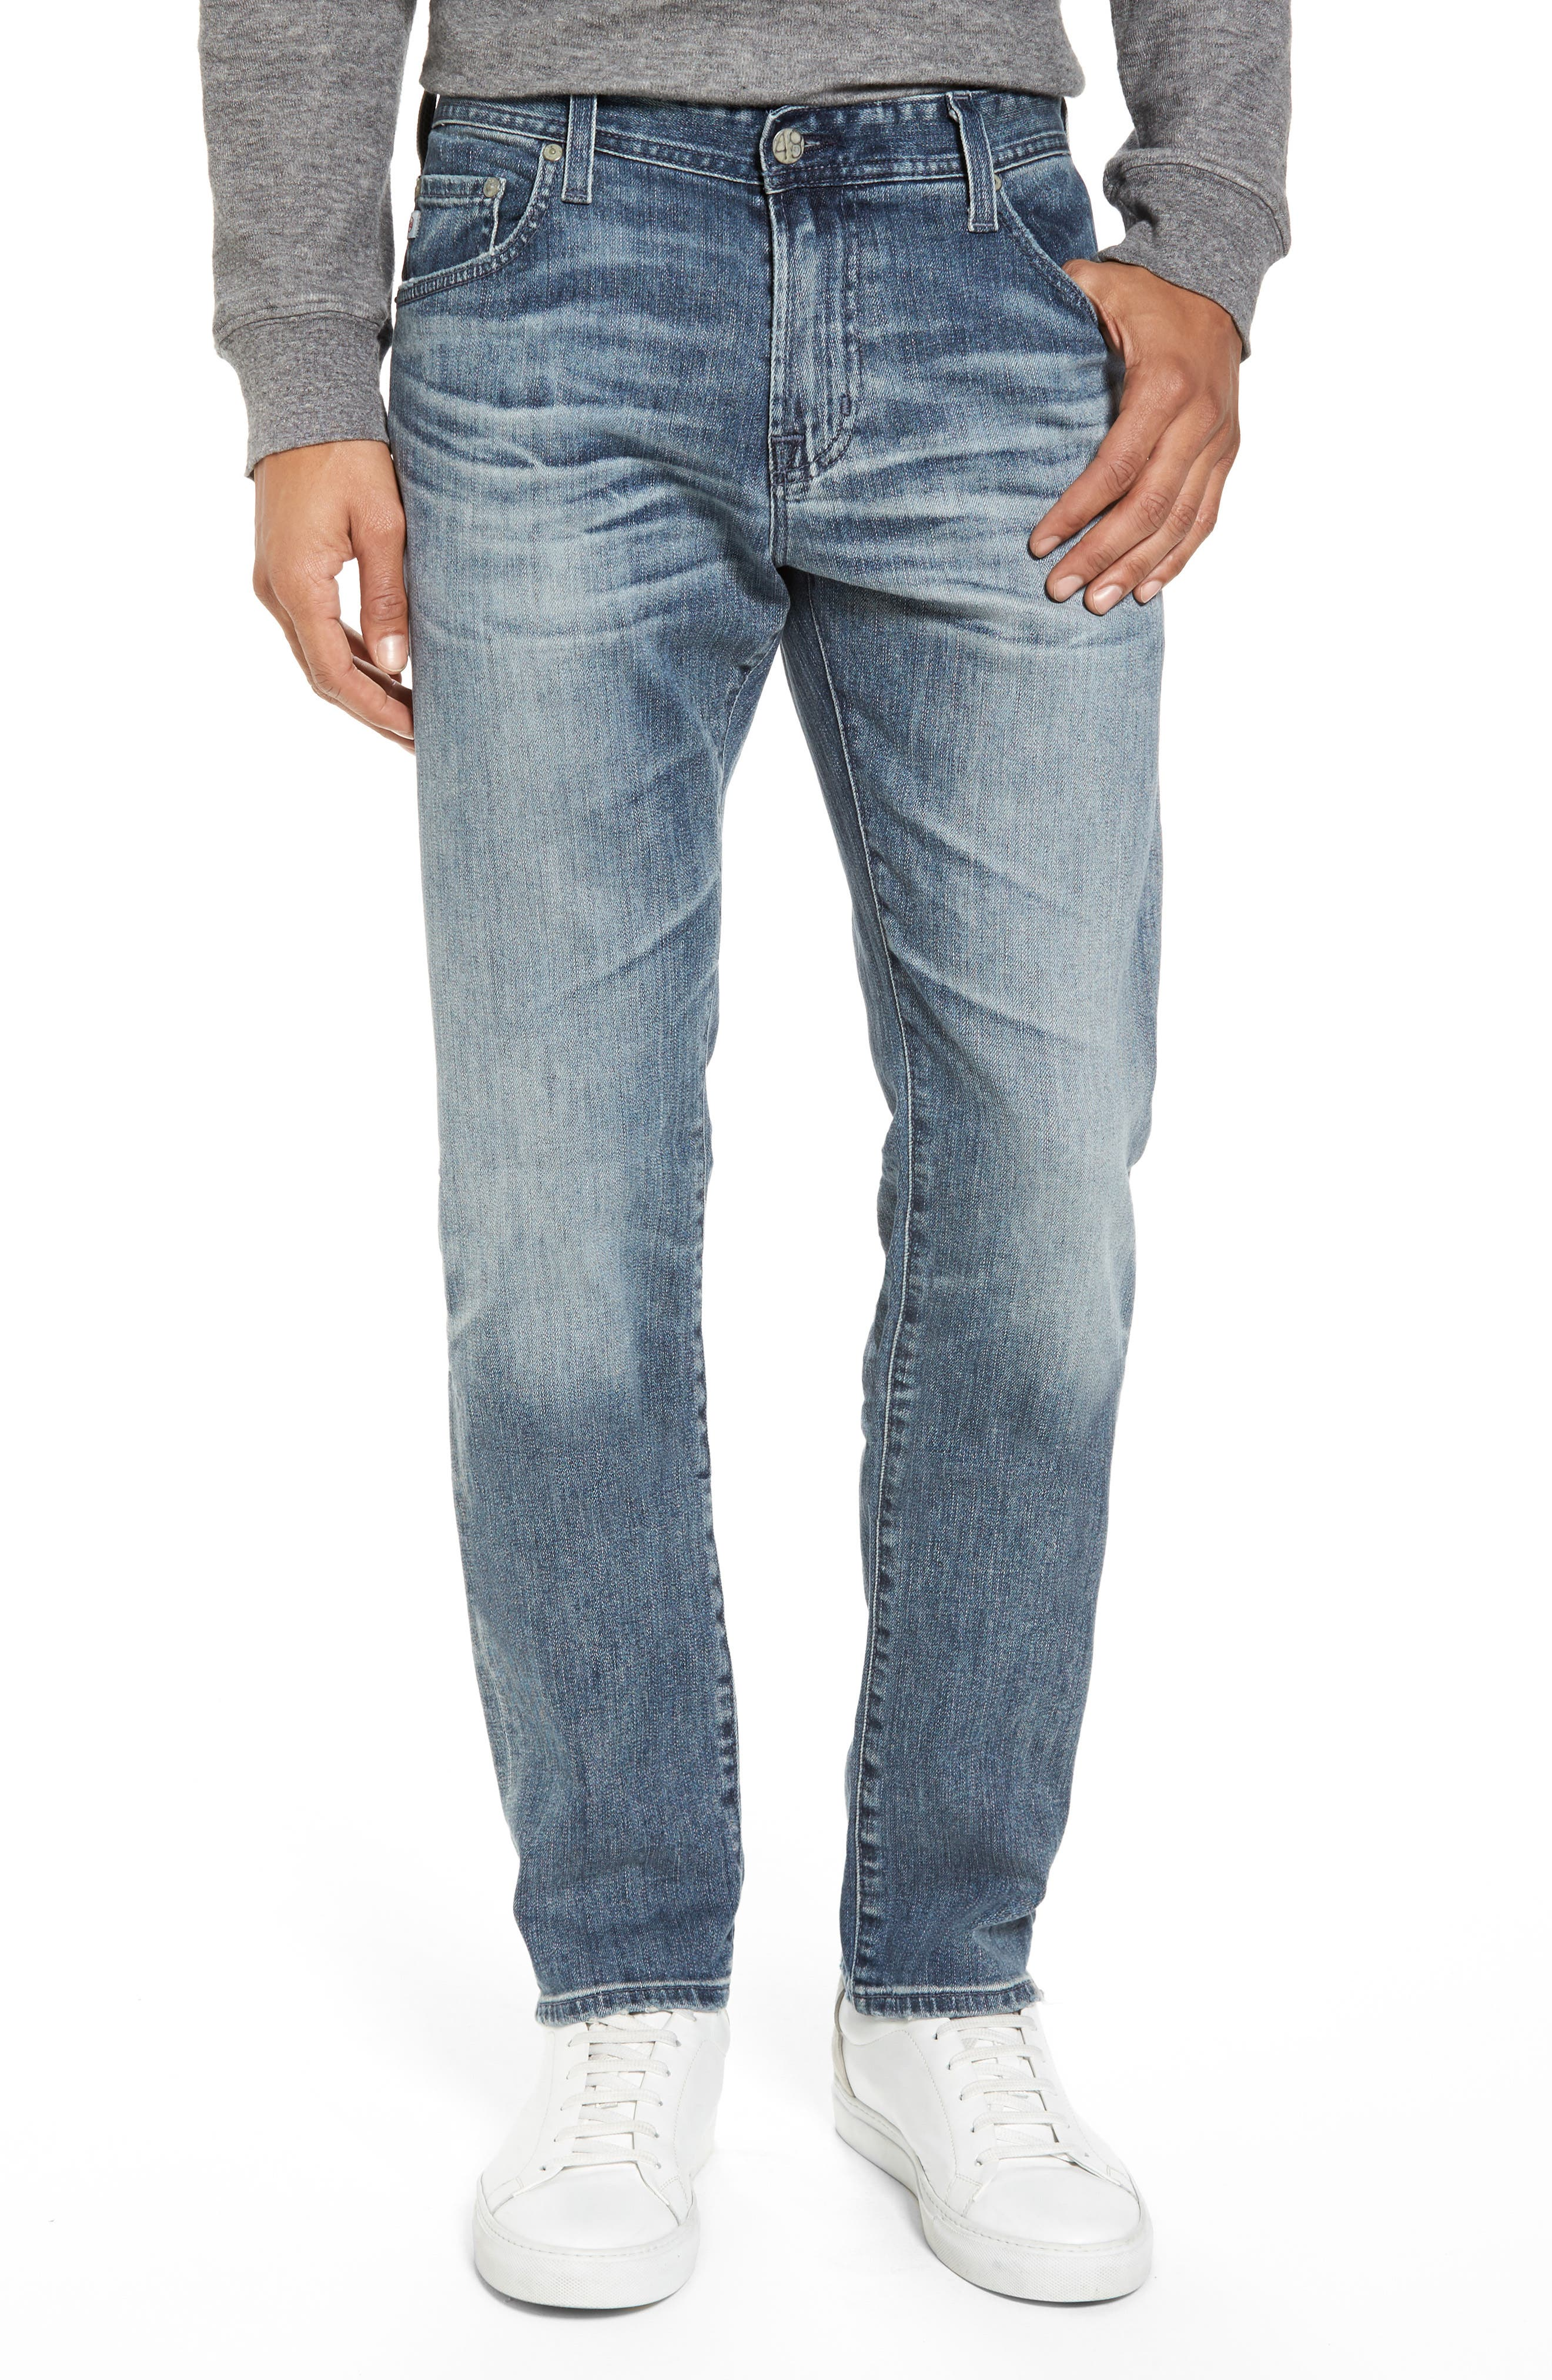 Tellis Slim Fit Jeans,                         Main,                         color, 16 Years Lofted